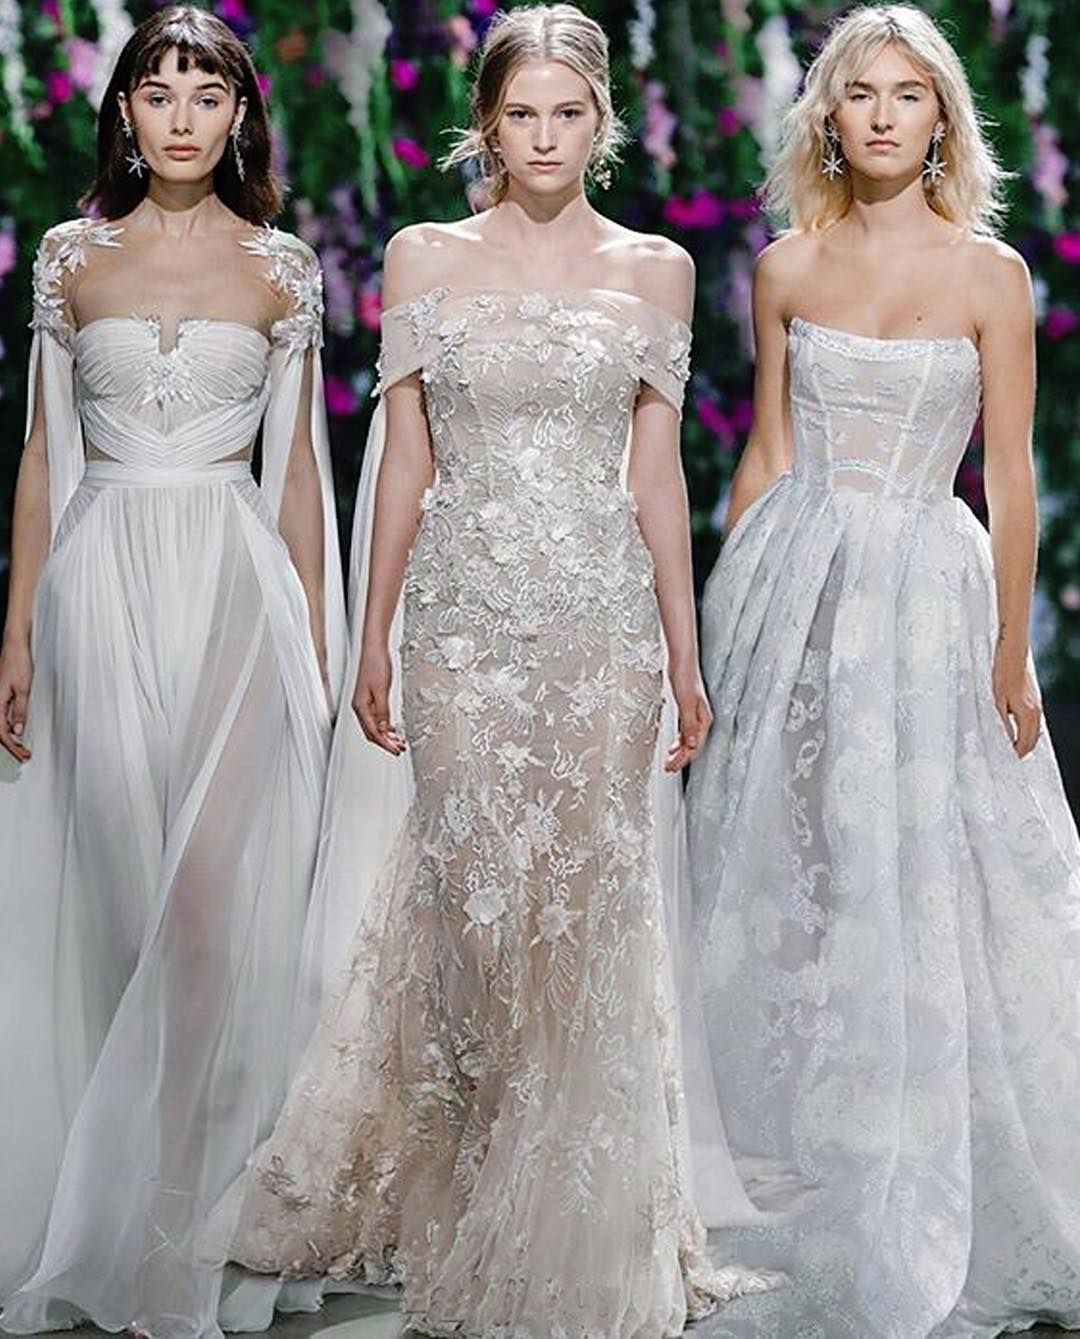 Wedding dresses for thin figures Which bare neck dress are you GALA left sweet yet sassy